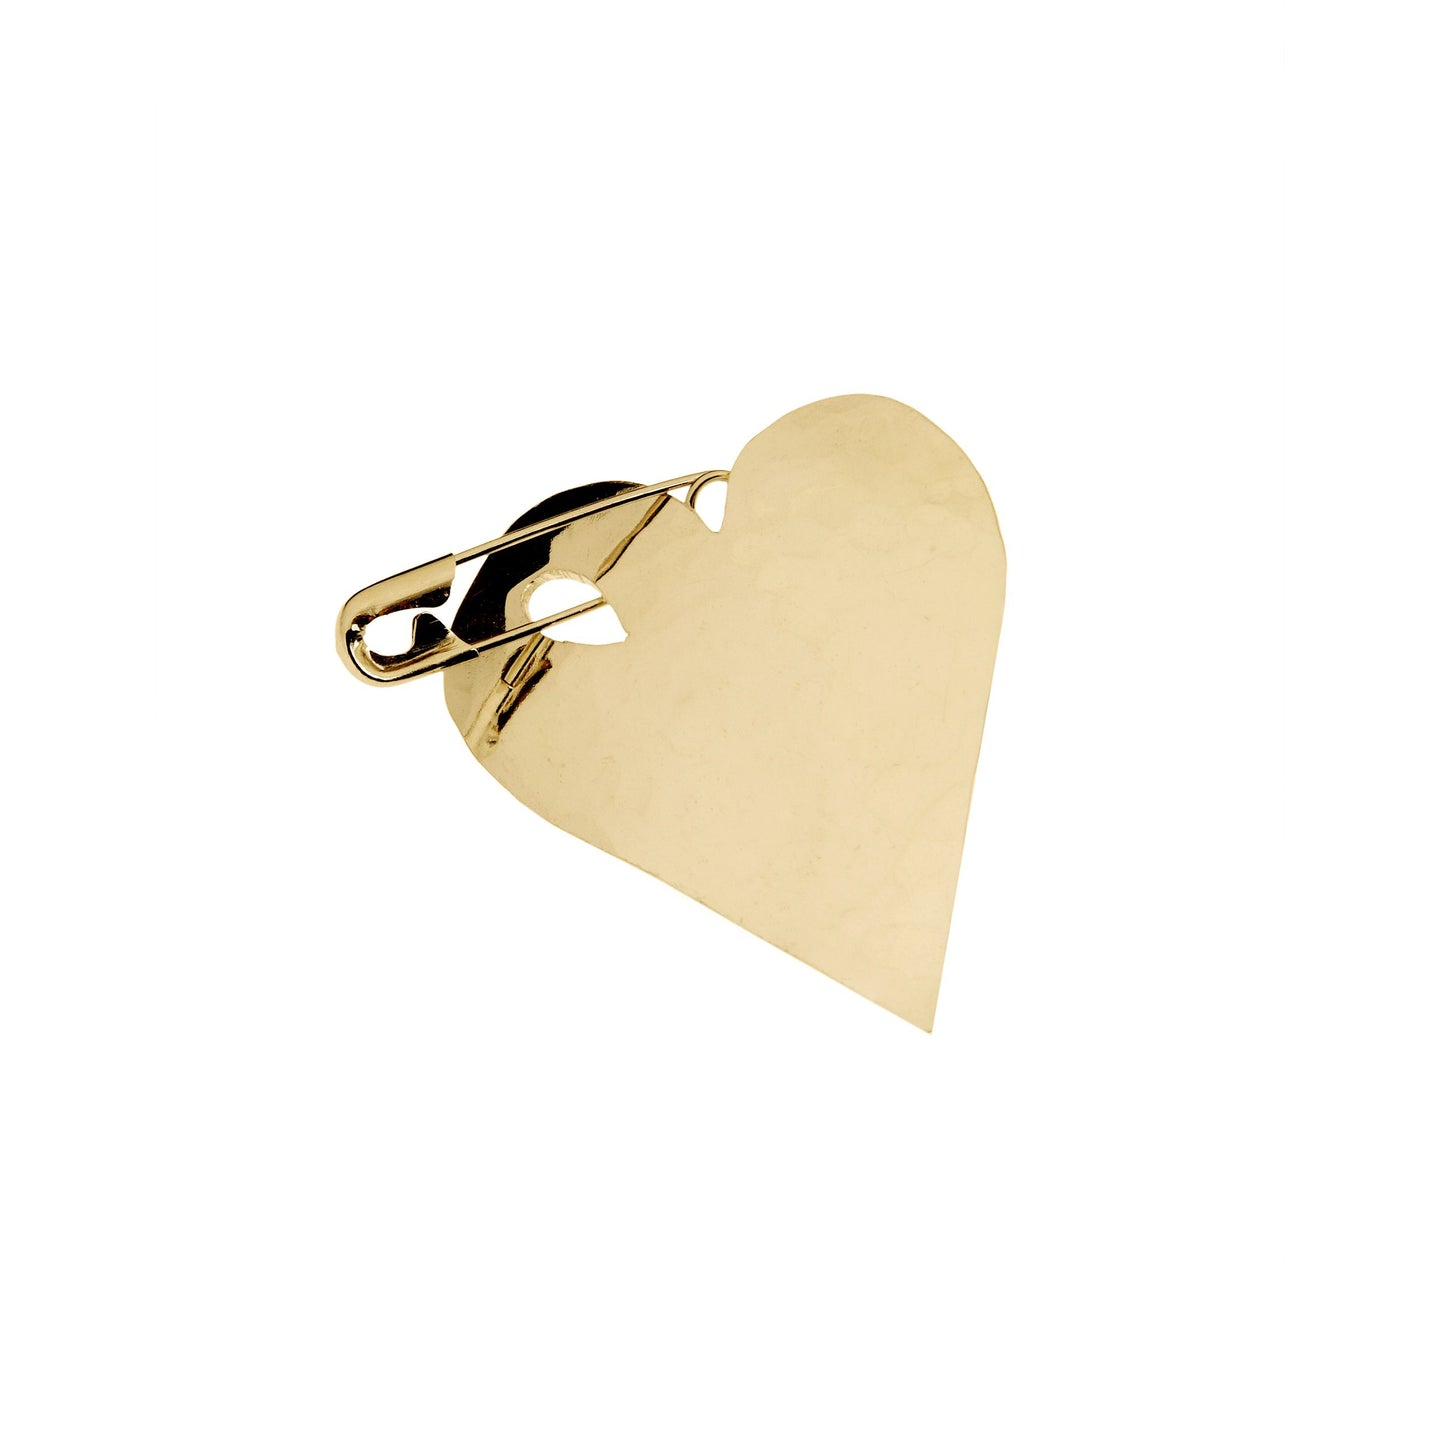 Wouters & Hendrix - PSC00100 - brooch heart - gold